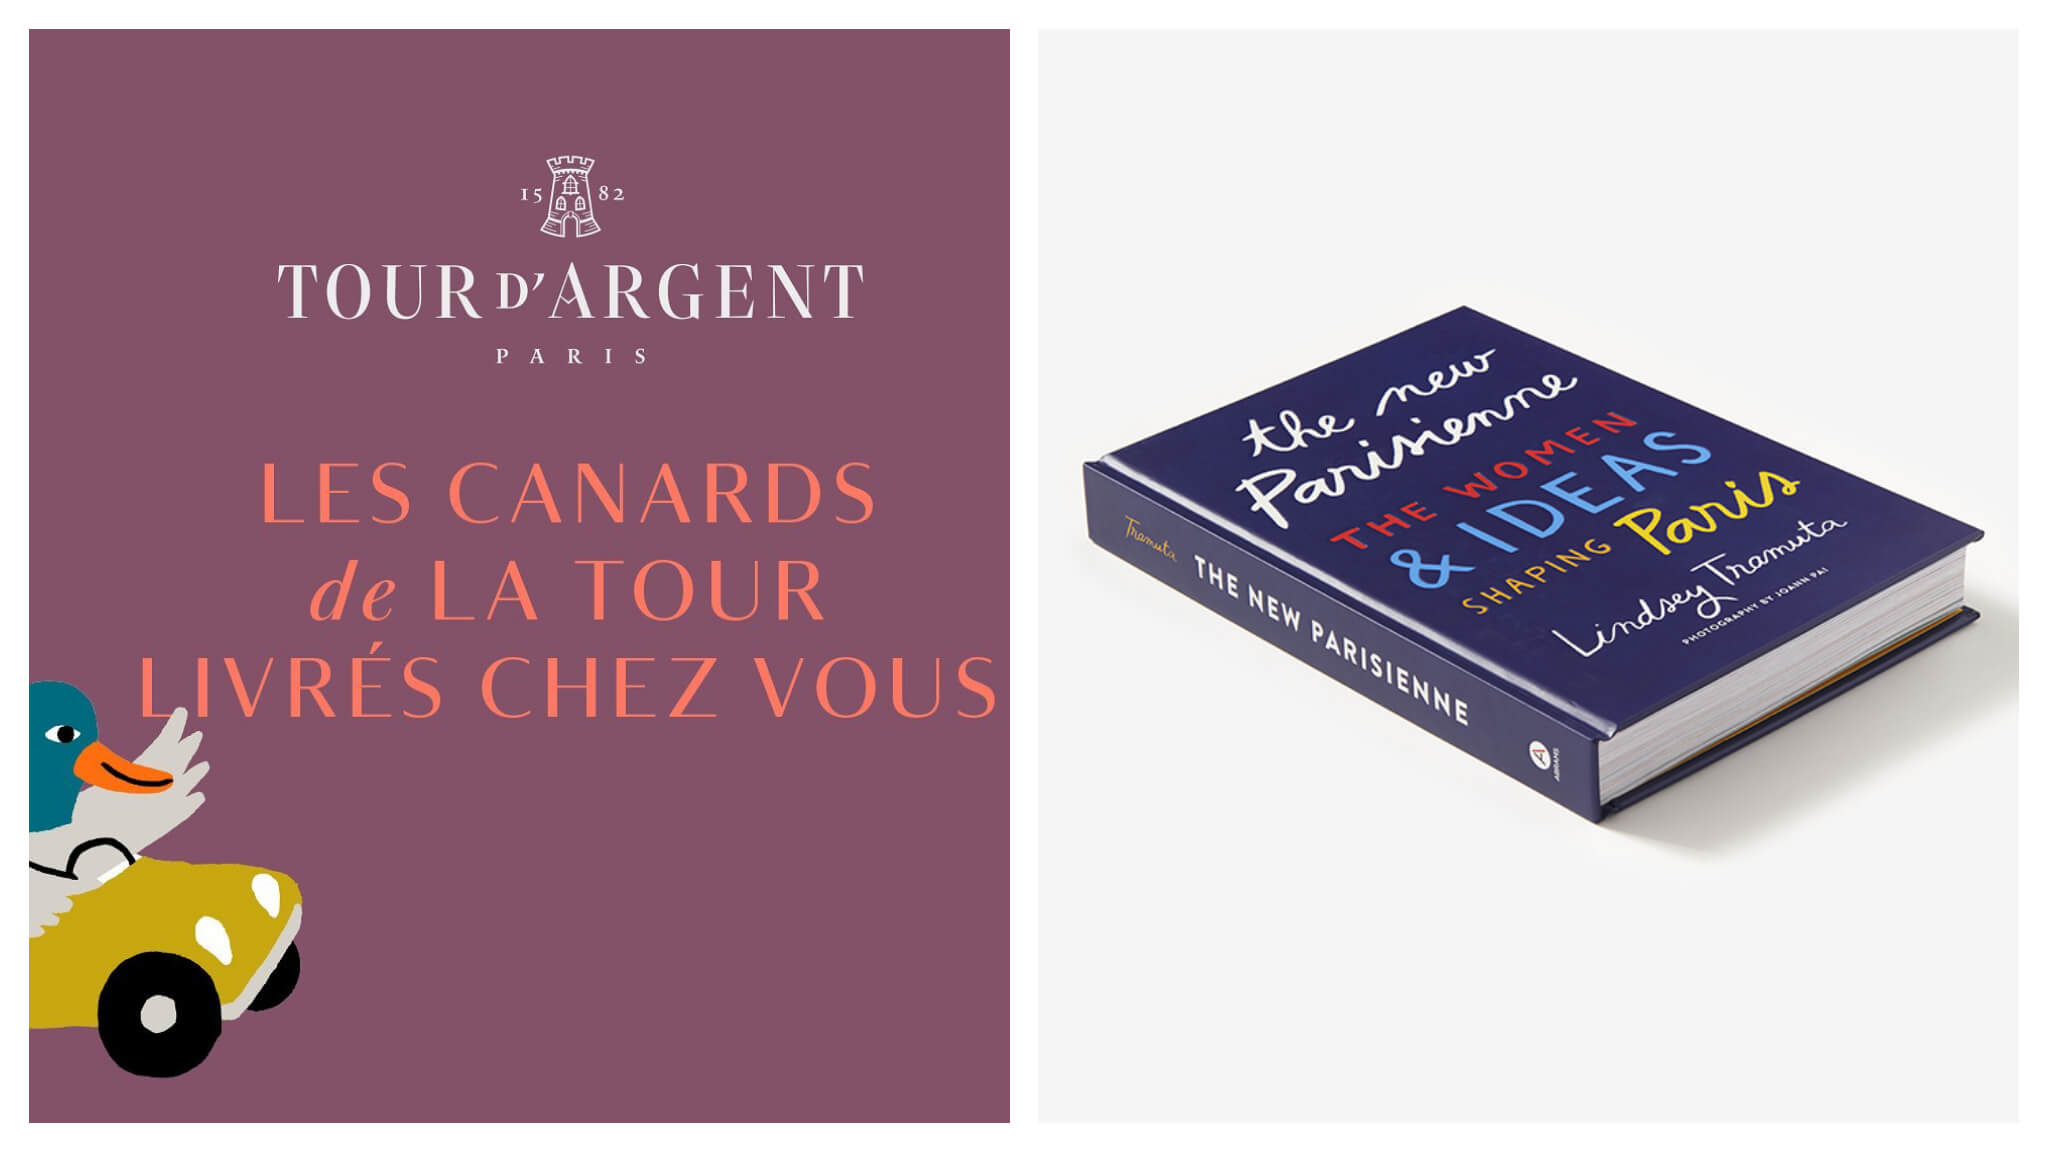 """Left: An image from the Tour d'Argent with a duck driving a car and waving with his left wing. The text reads, """"Les canards de la tour livrés chez vous,"""" in english, """"The tower ducks deliver to your home."""" Right: The cover of The New Parisienne: The Women & Ideas Shaping Paris by Lindsey Tramuta"""